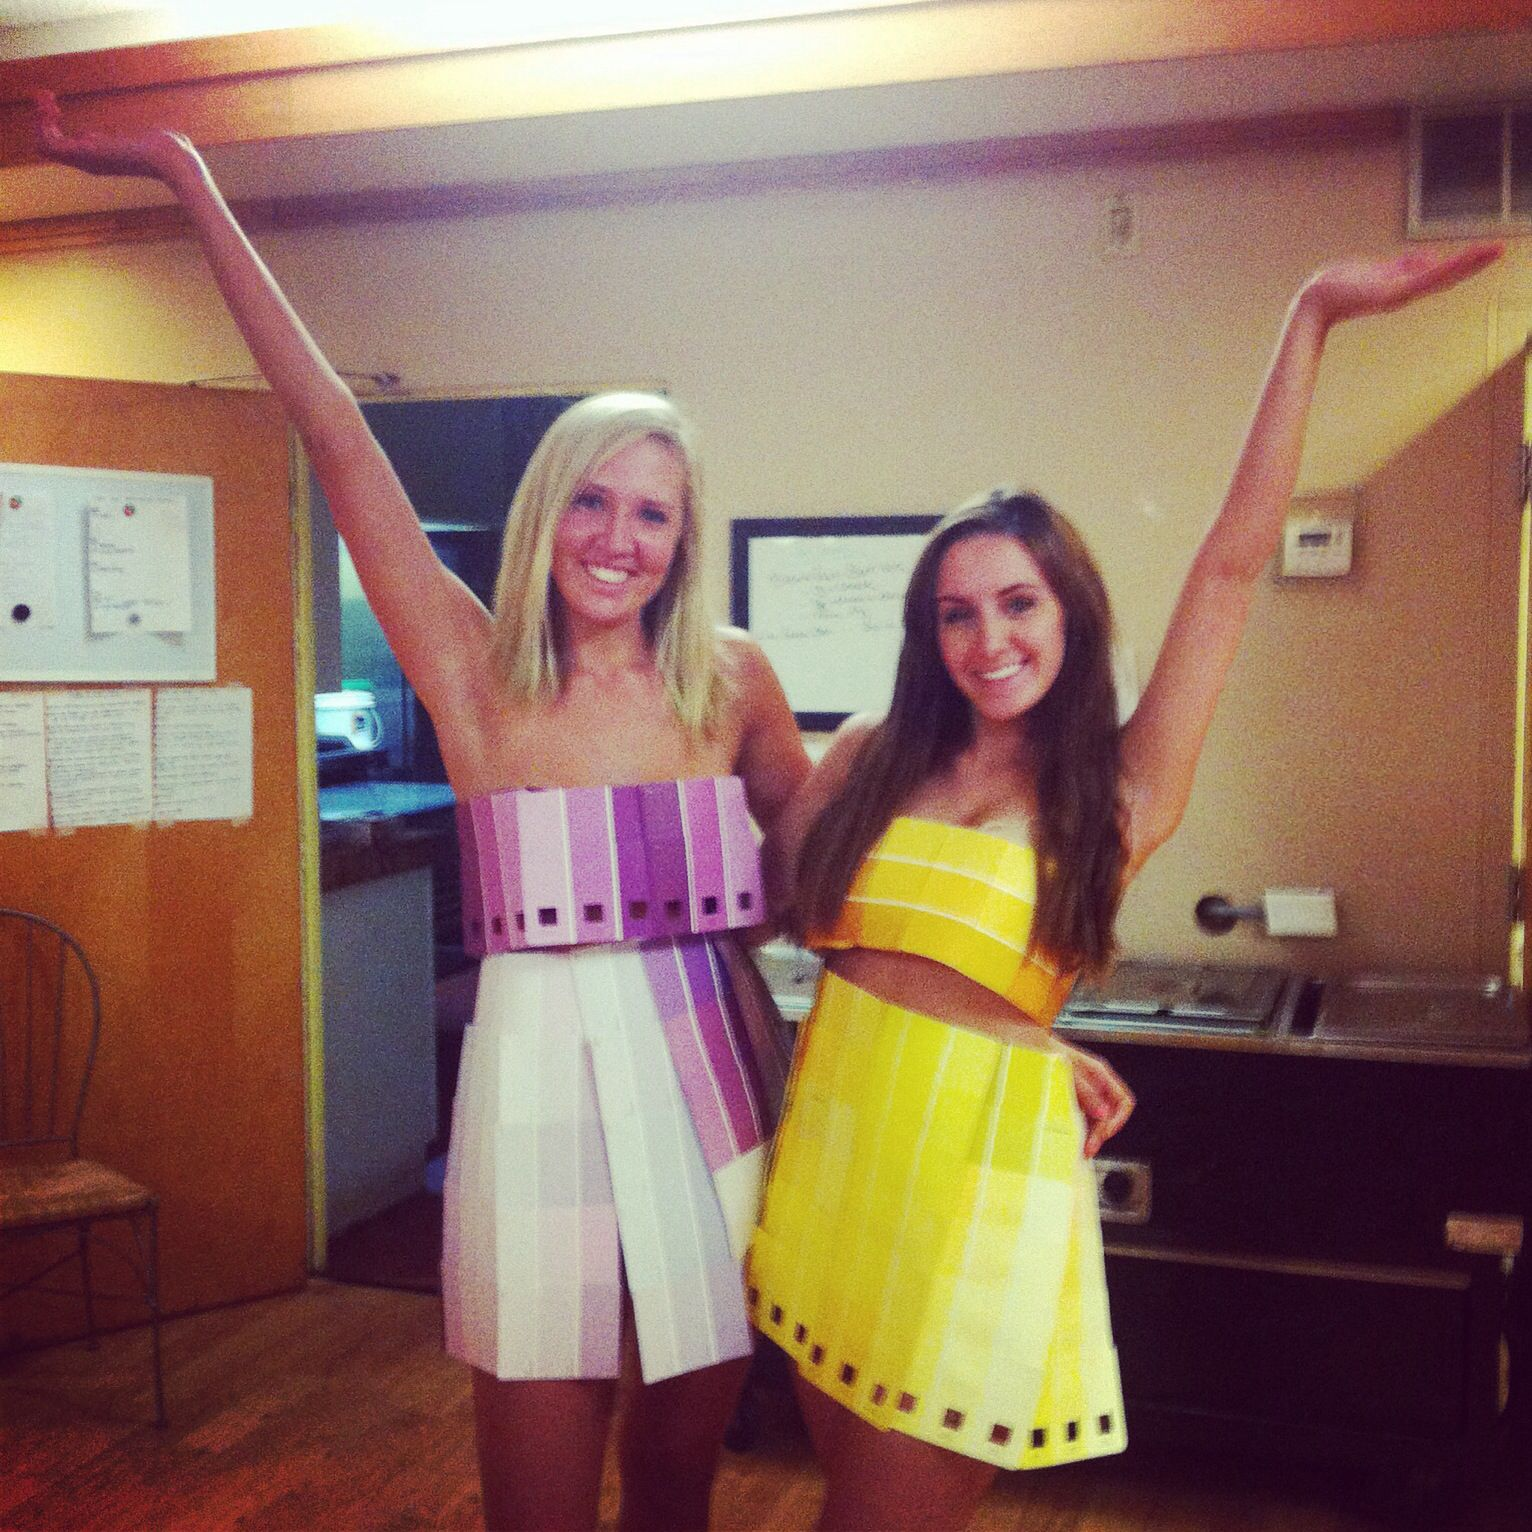 Fantastic Girls Matching Abc Party Ideas Anything But Clos All You Need Is Paint Strip Samples Andpackaging Anything But Clos All You Need Is Paint Strip Samples Abc Party Ideas ideas Abc Party Ideas